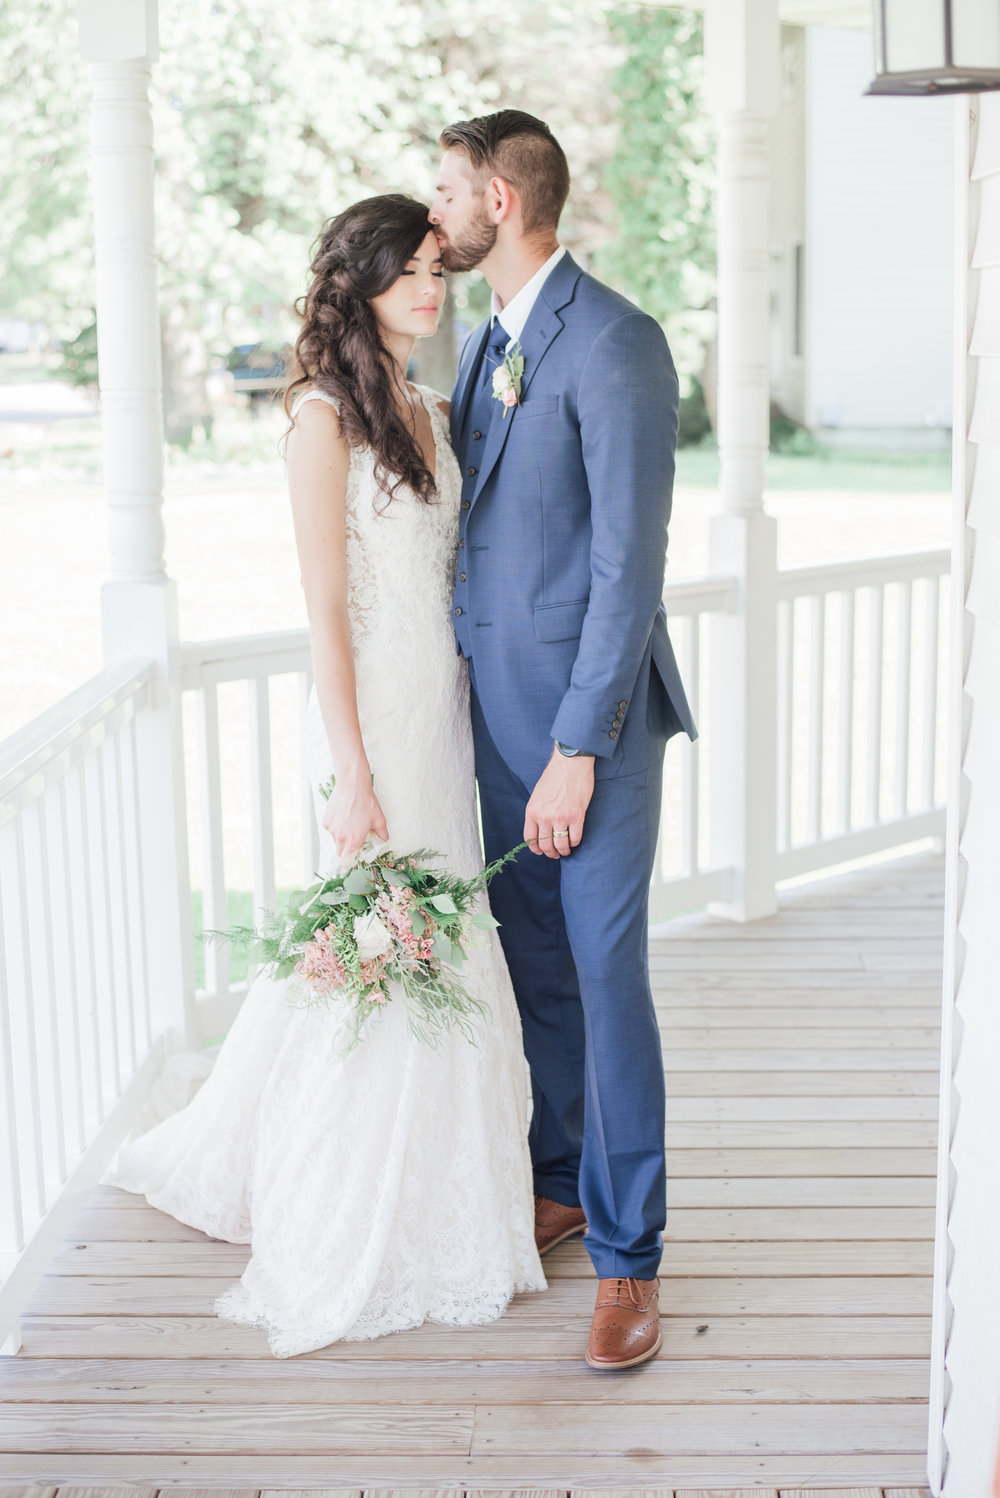 Although it didn't rain on Matt and Stacy's big day, this white porch is an example of a perfect location for a rainy day. We would've been able to get very similar pictures with natural light on a rainy day.